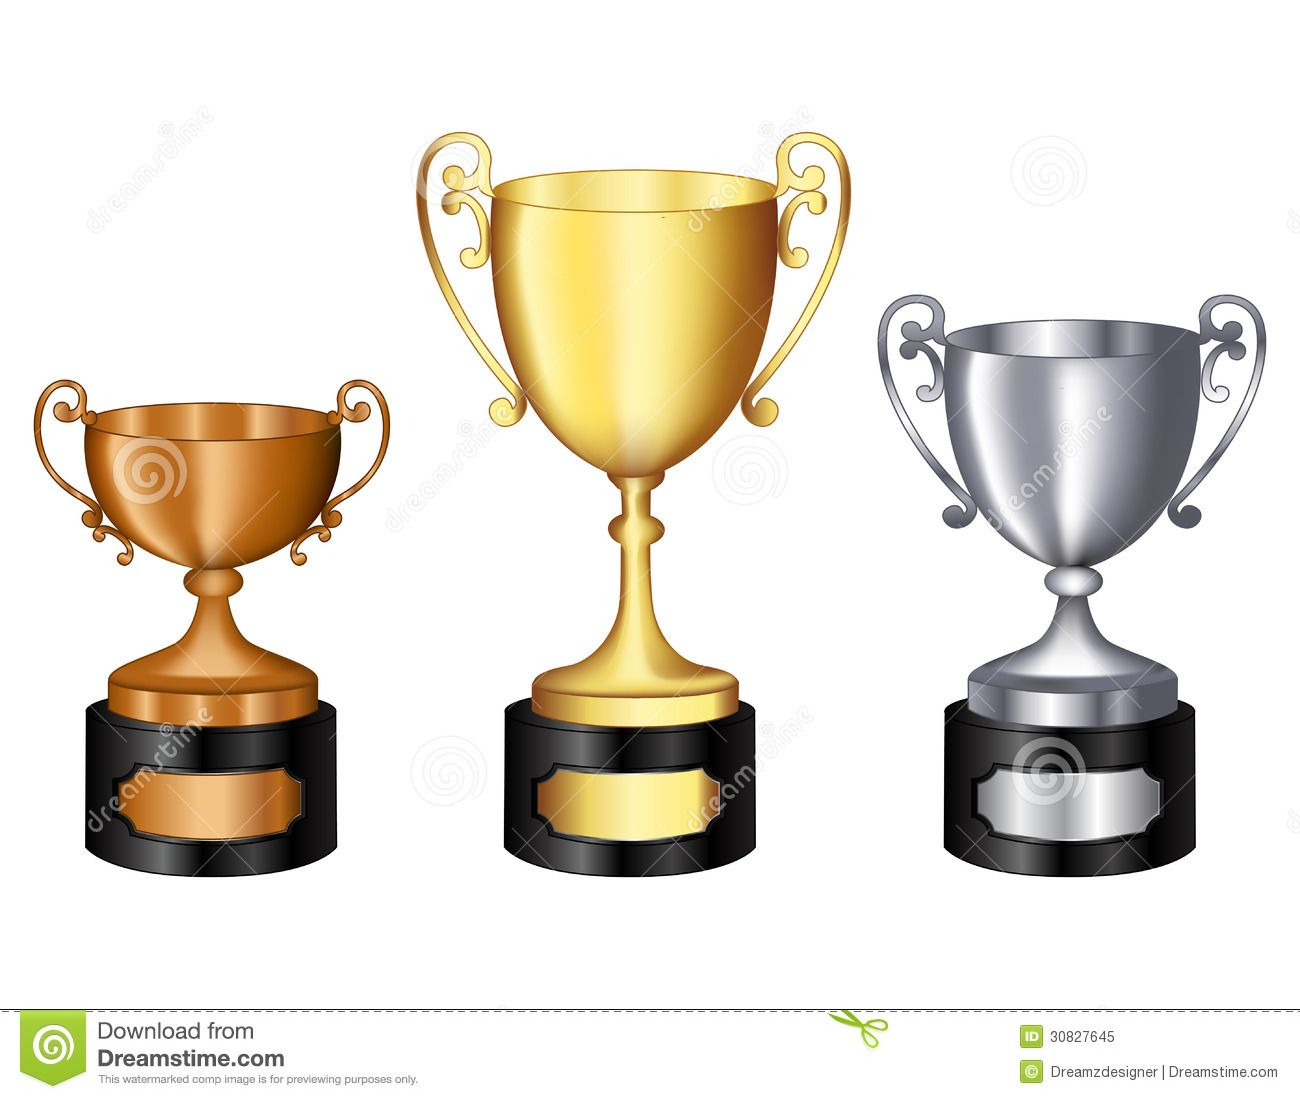 Trophy Gold Silver And Bronze Gold Silver And Bronze Champion Trophy For 1st 2 Sponsored Ad Ad Silver Trophy Gold Silver Copper Silver Gold Bronze